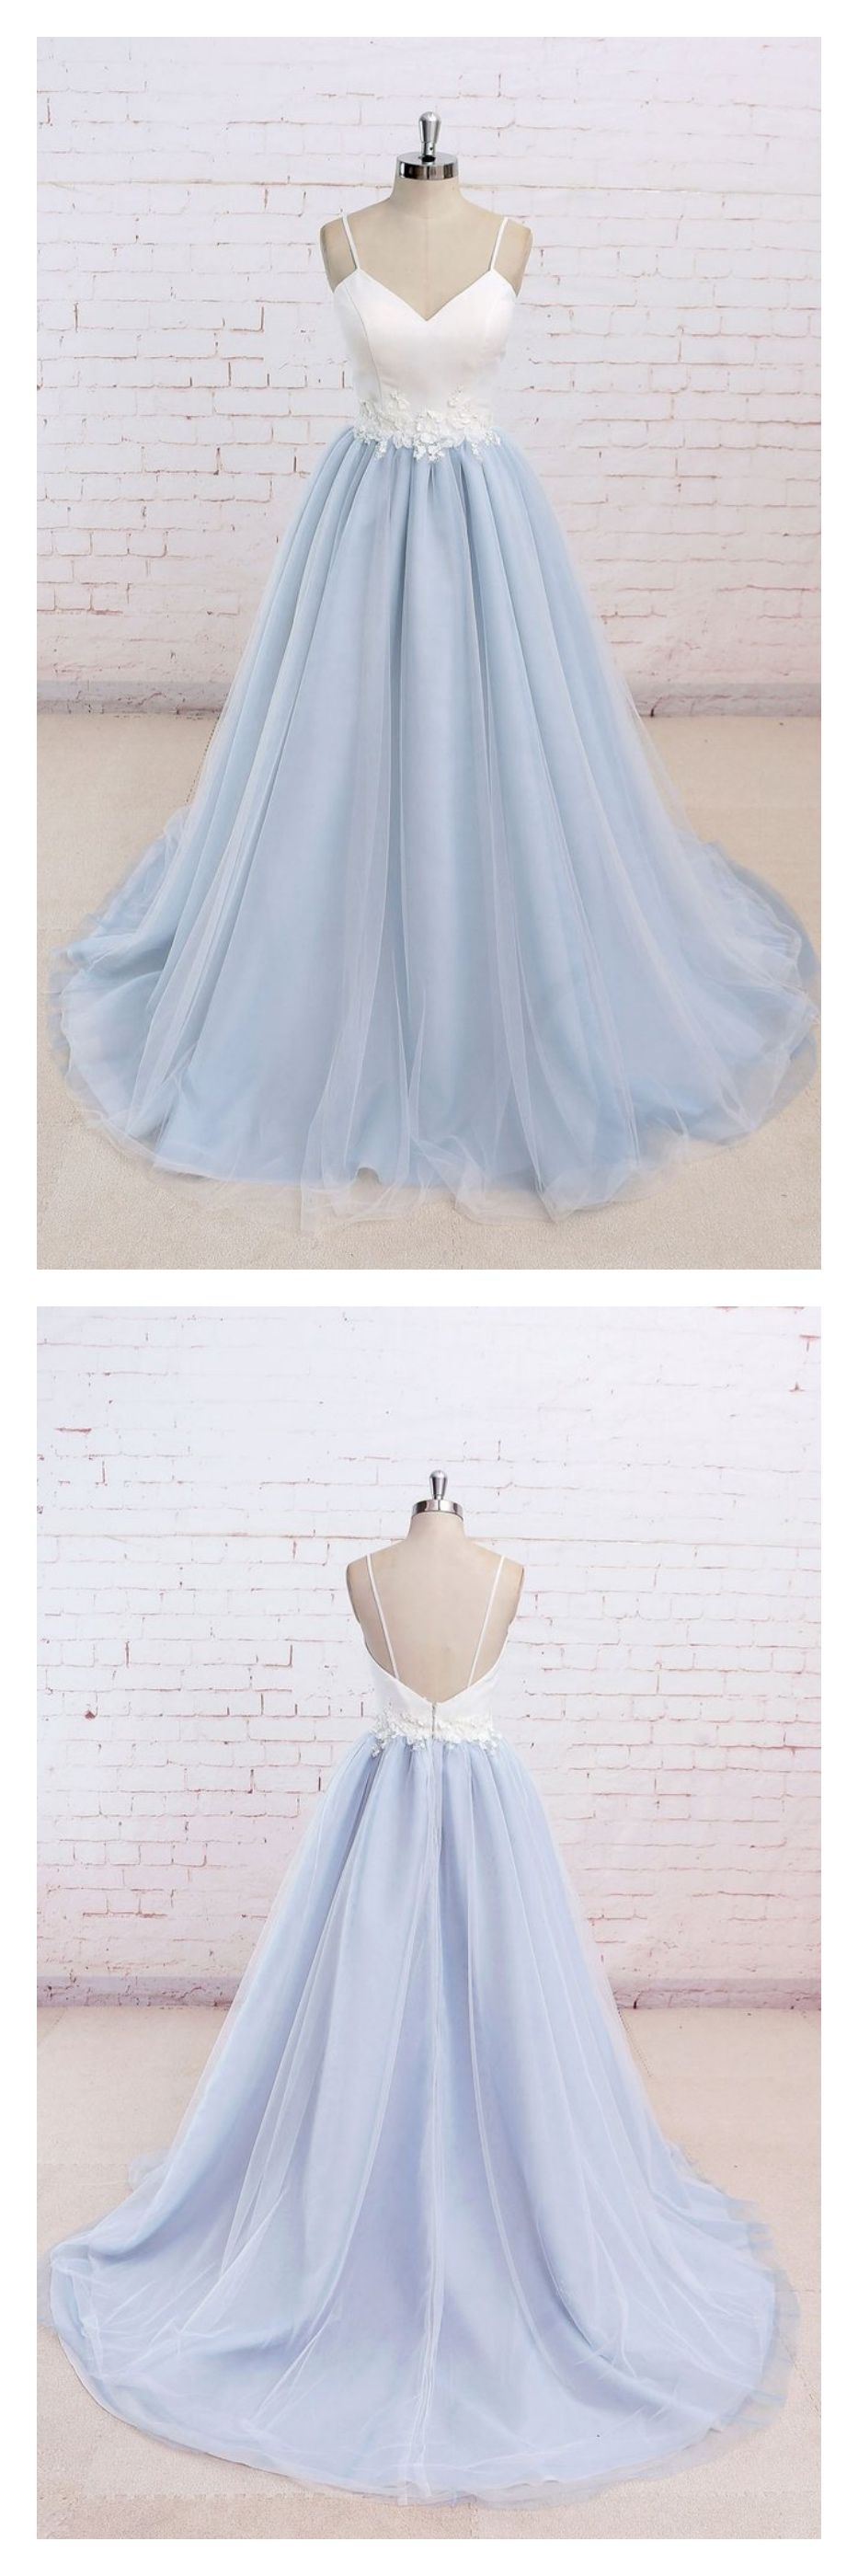 Spaghetti straps white and sky blue long prom dresseshs from